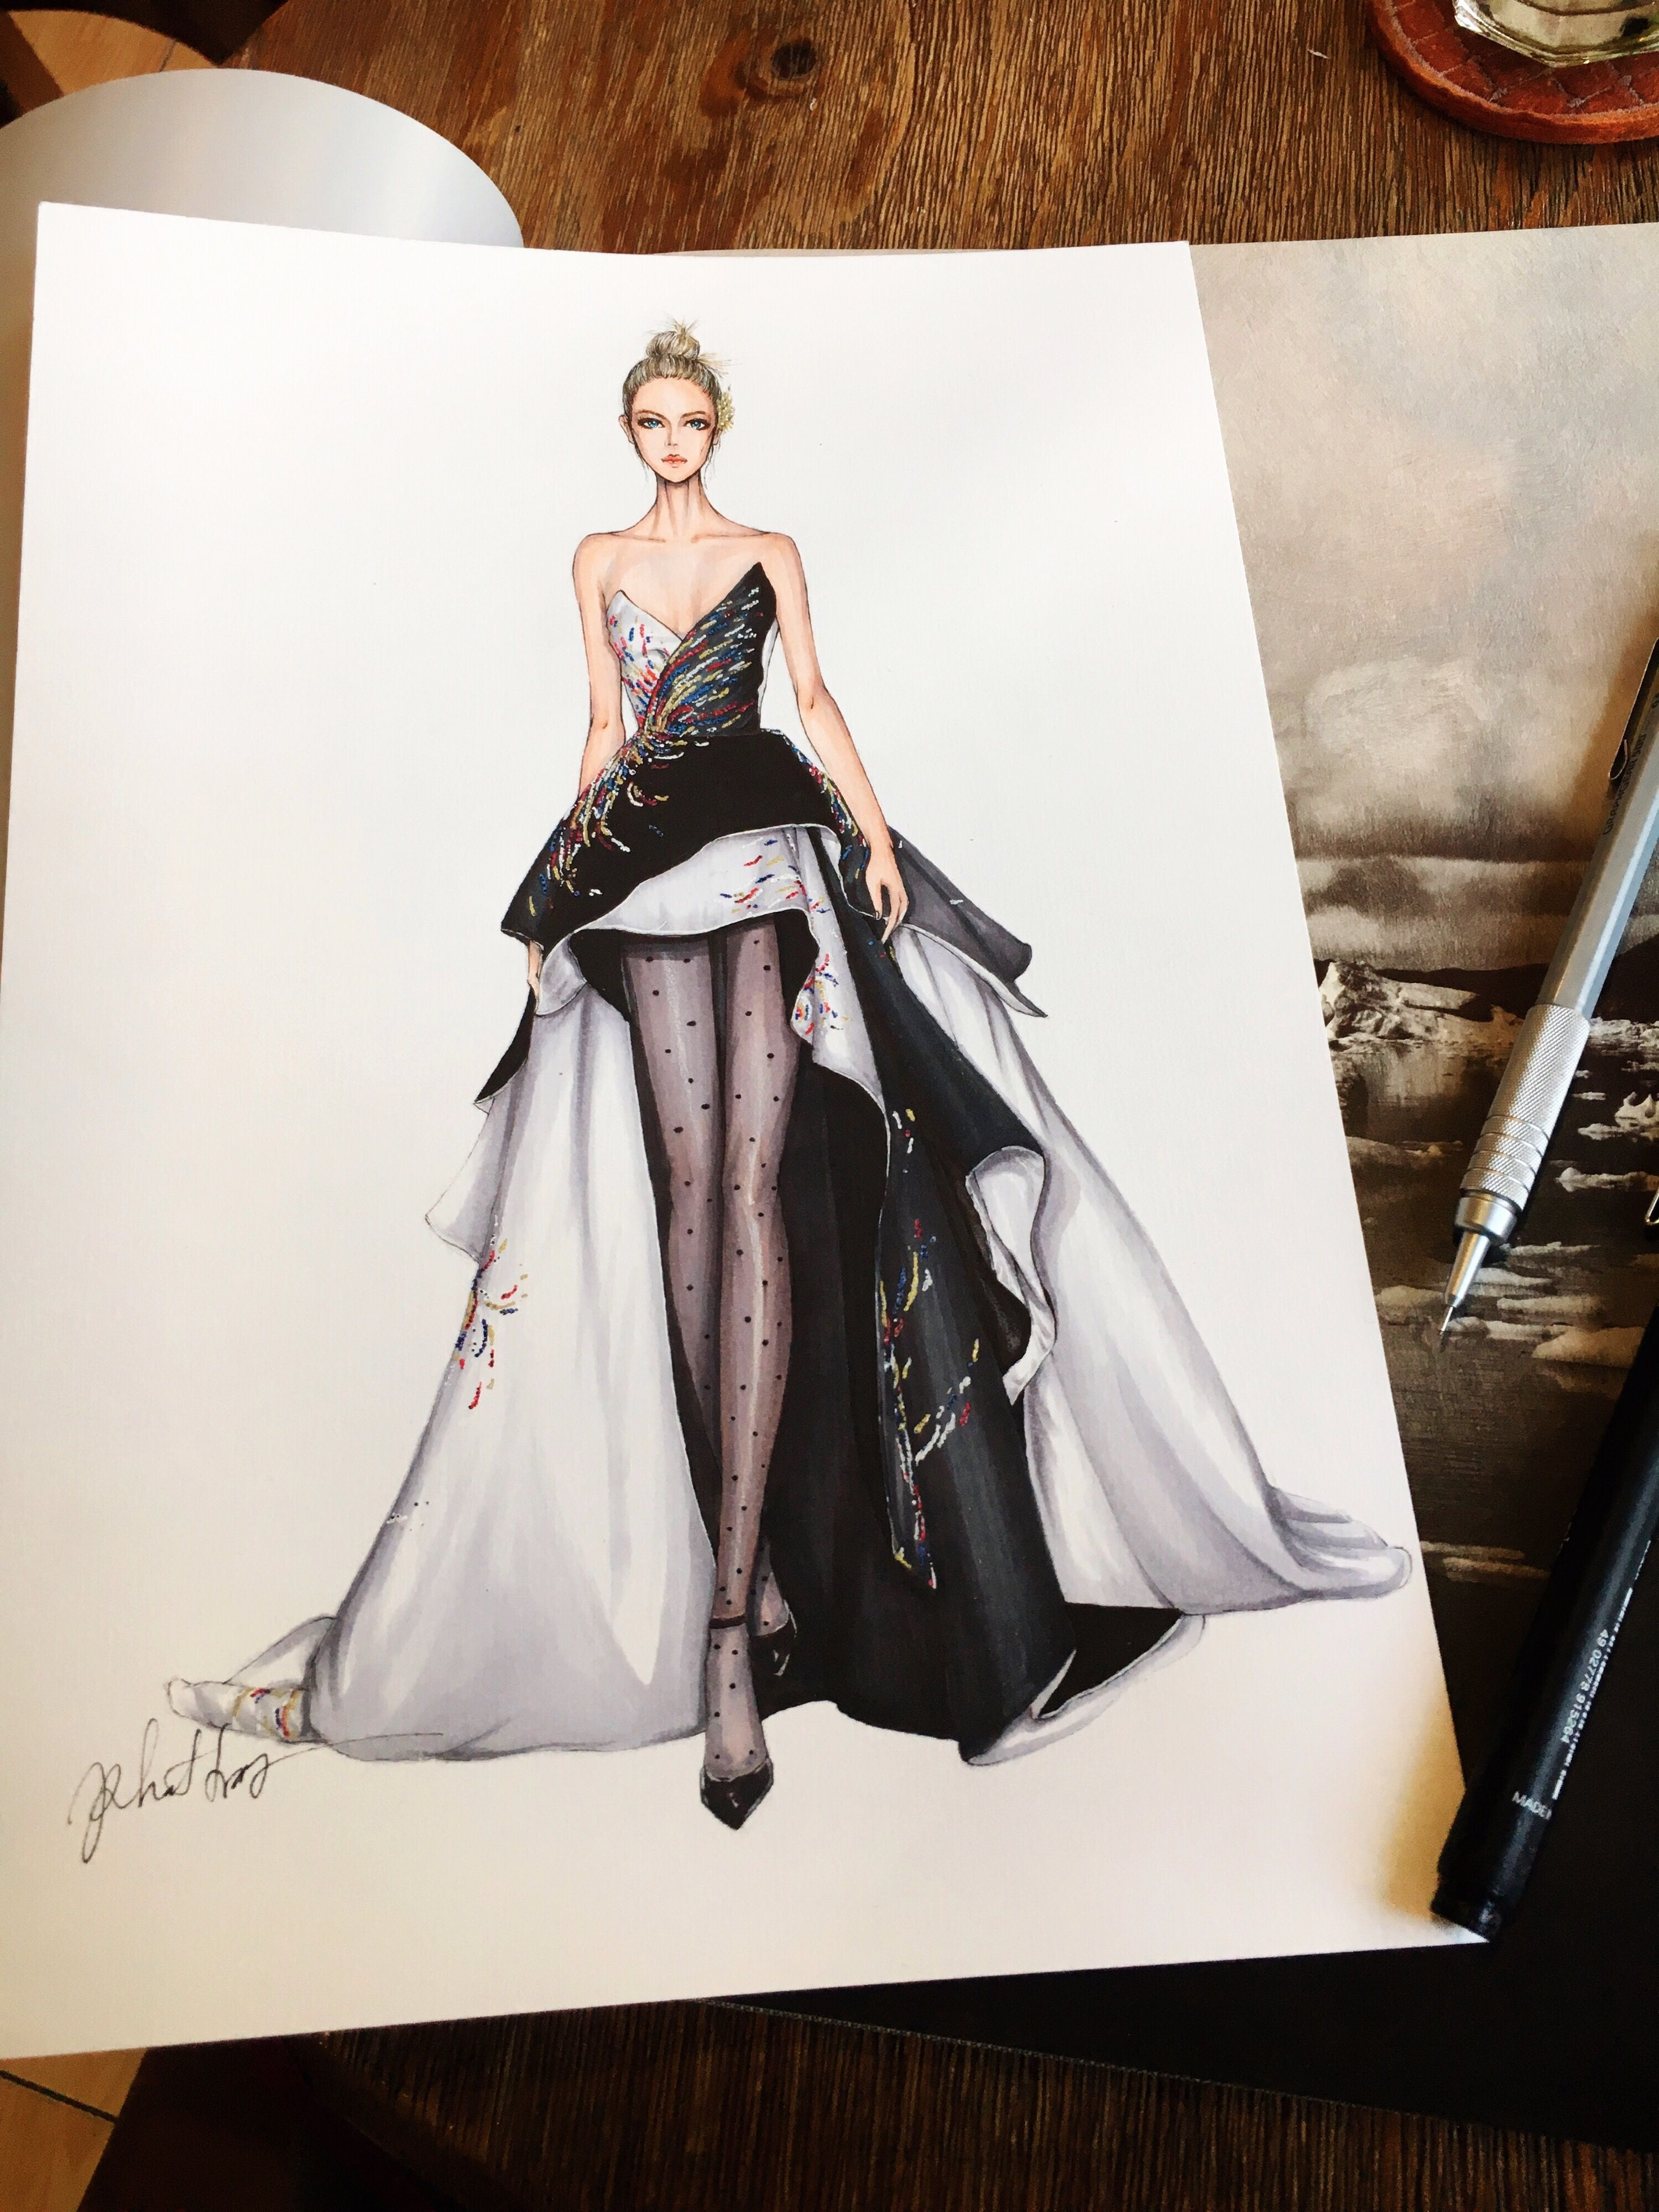 Pin by paola salazar on diseños pinterest fashion illustrations